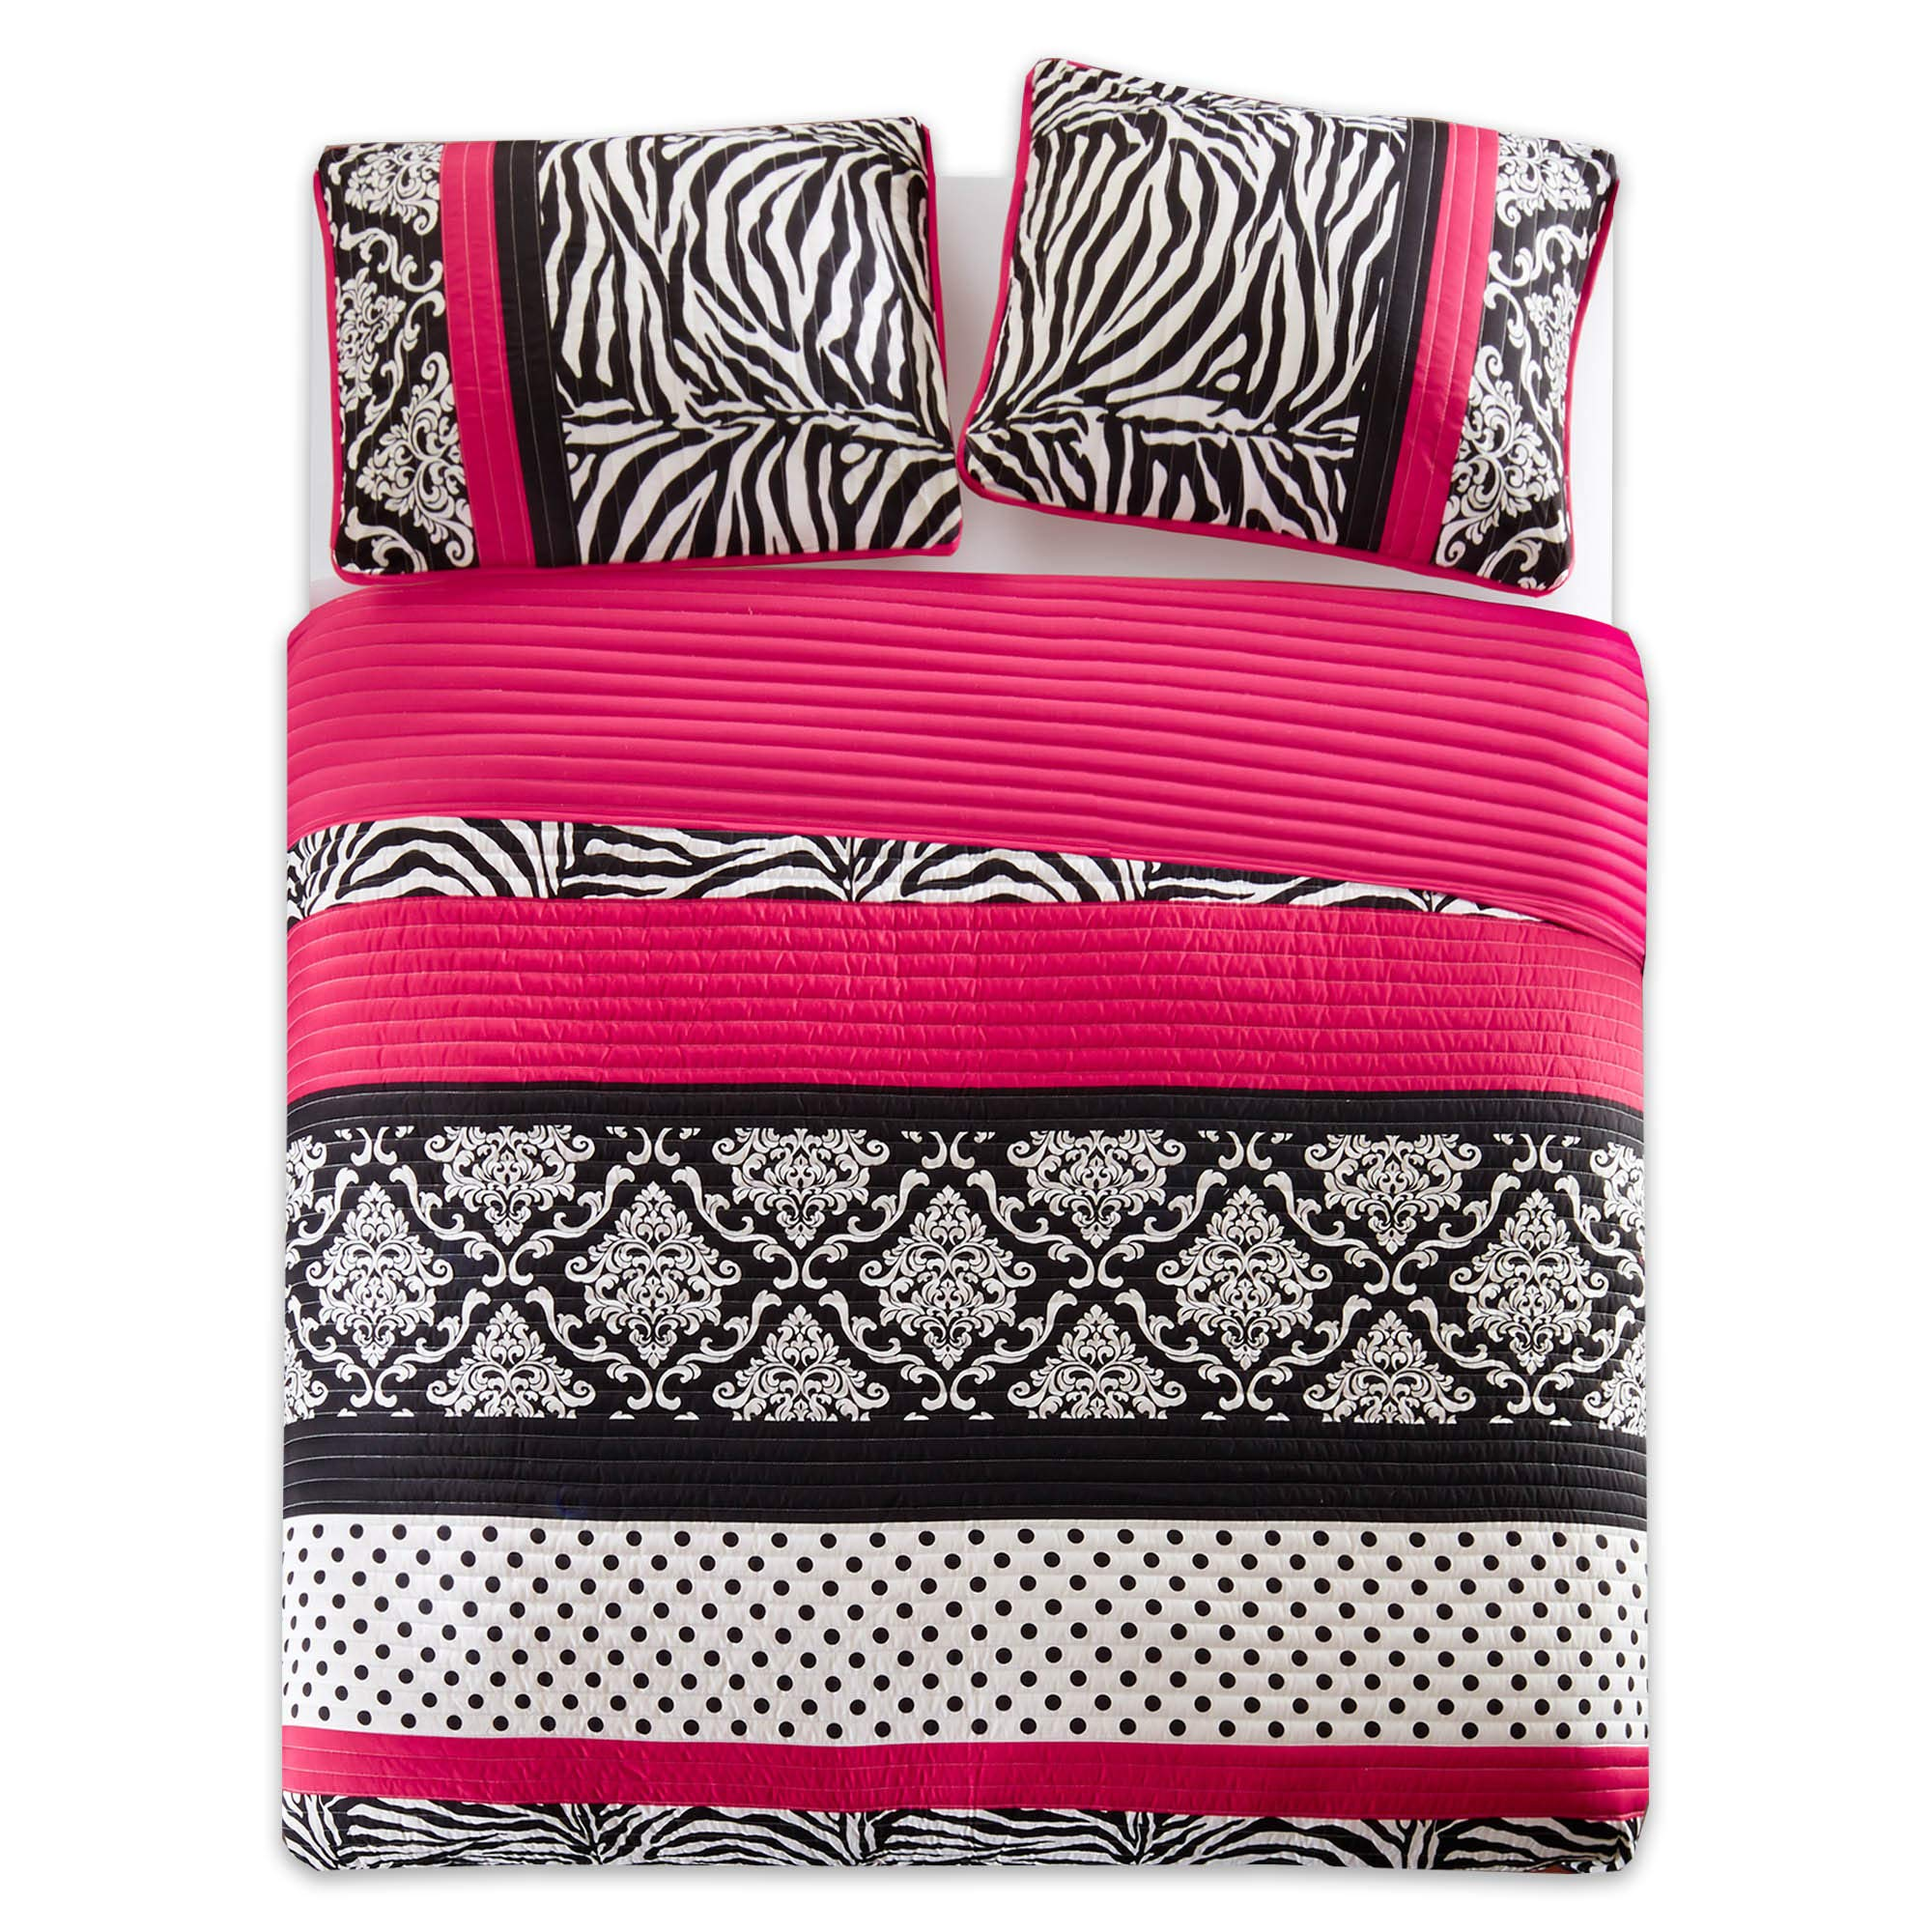 Quilt Set Twin/Twin XL Bedding Set - Sally - Teen Girl 2 Pieces [ Hot Pink and Black Bedding ] Zebra, Damask, Polka Dot Print - Hypoallergenic Soft Microfiber All Season Twin Coverlet